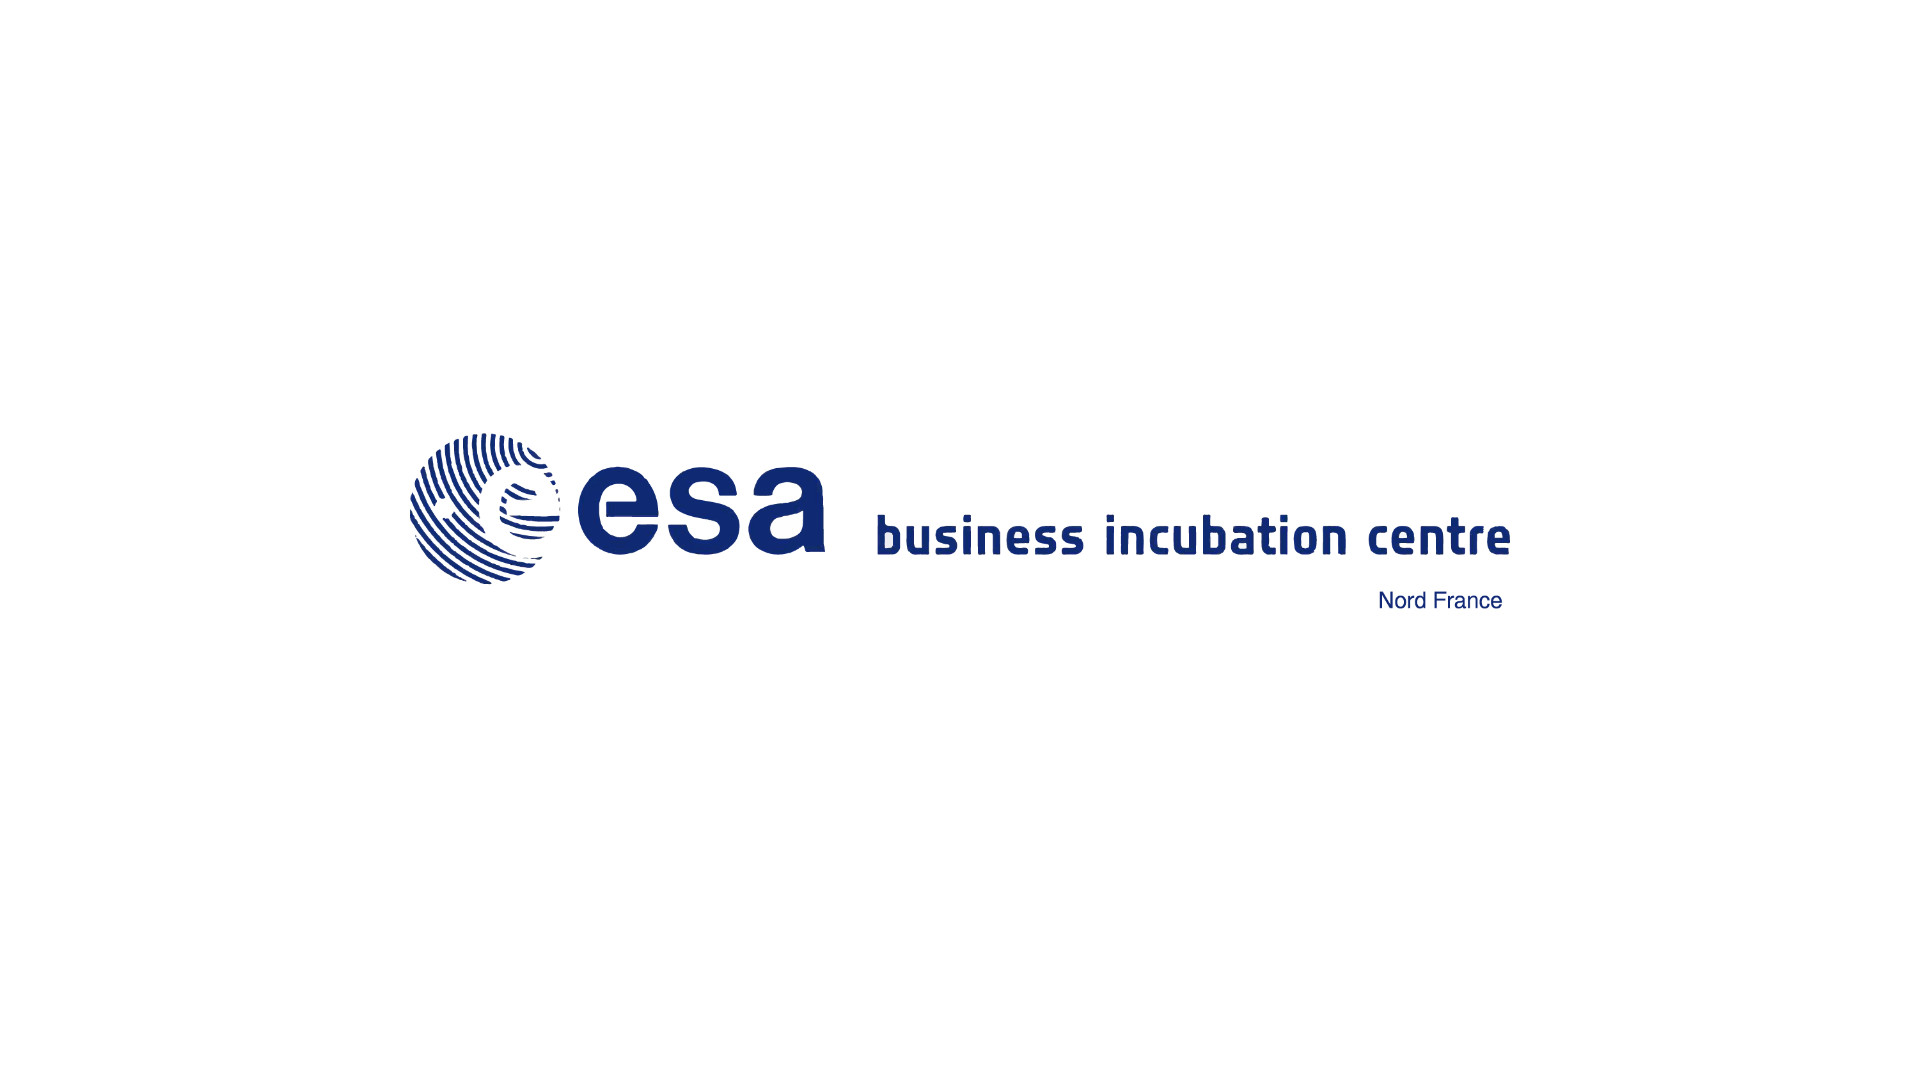 European Space Agency - Incubation